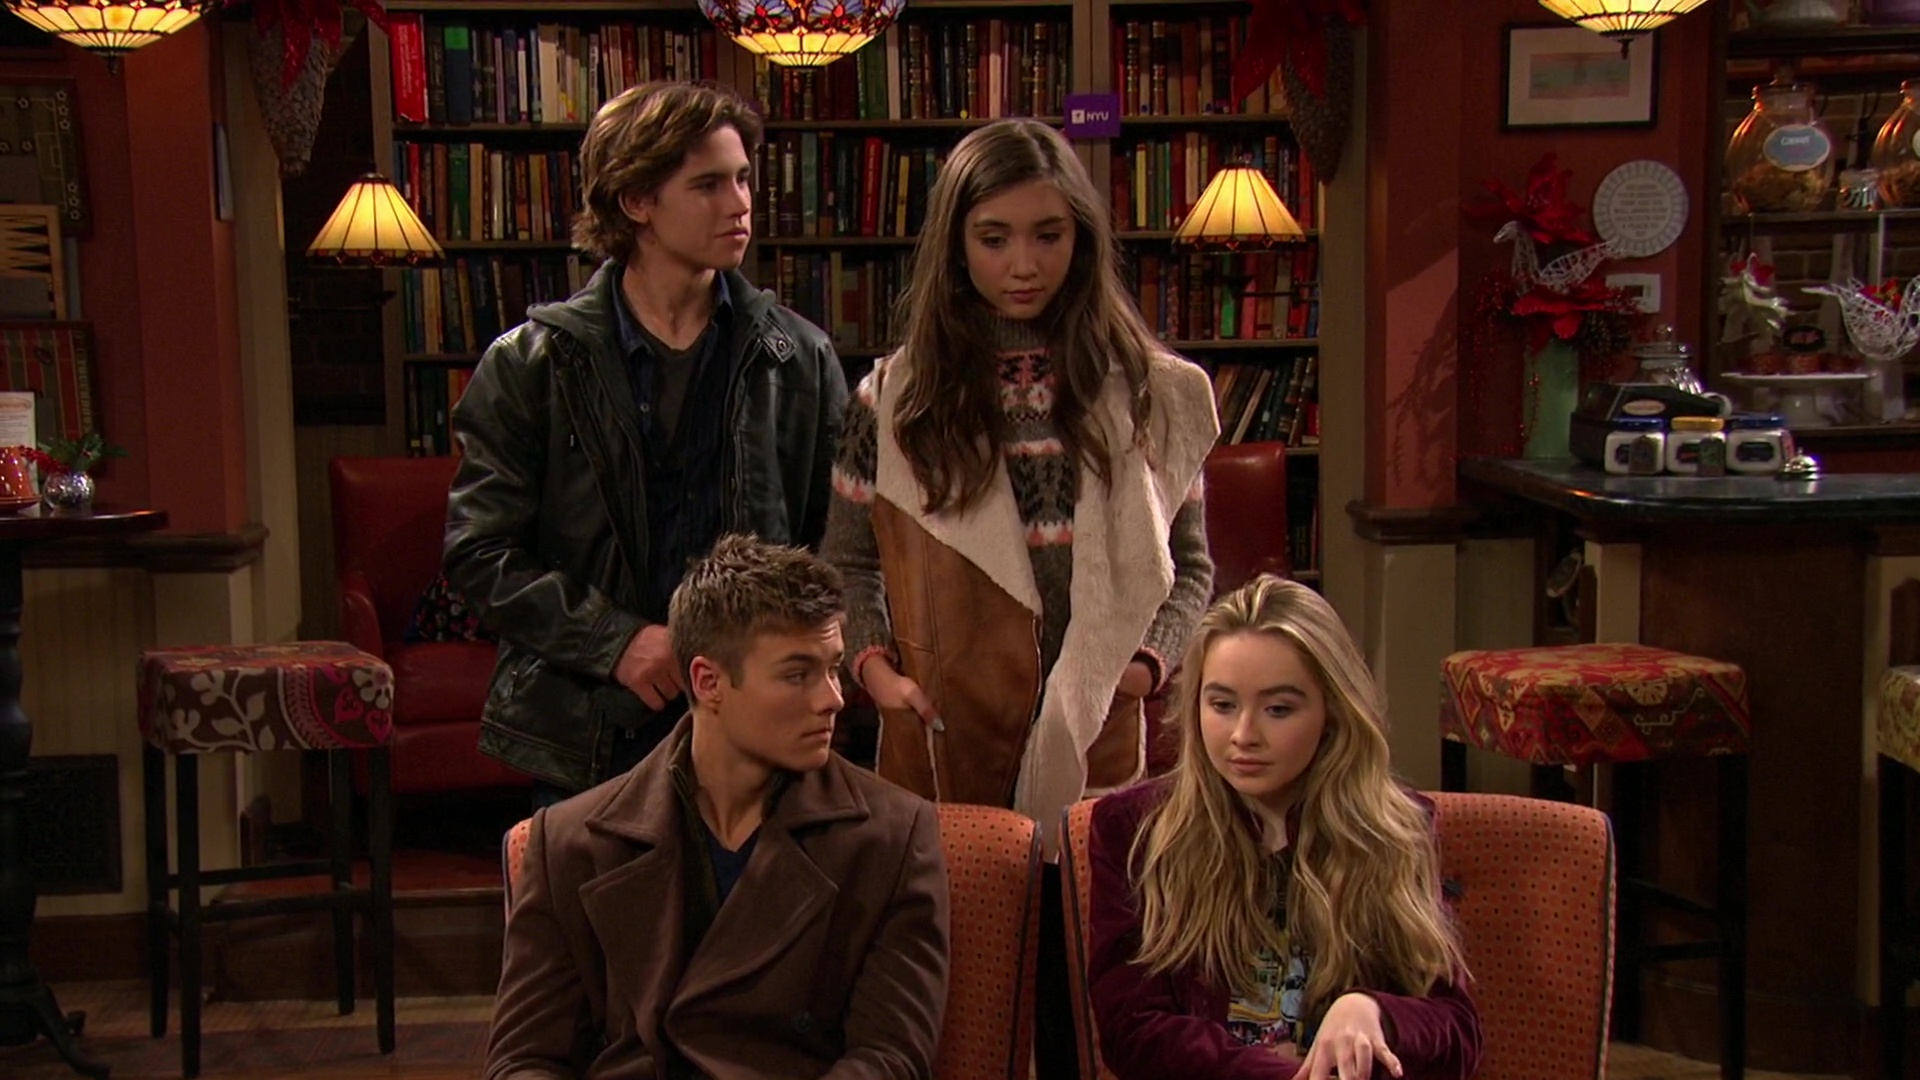 lucas and maya from girl meets world See how much the cast of disney channel's 'girl meets world' has changed since the first episode aired they've certainly grown up a whole lot.